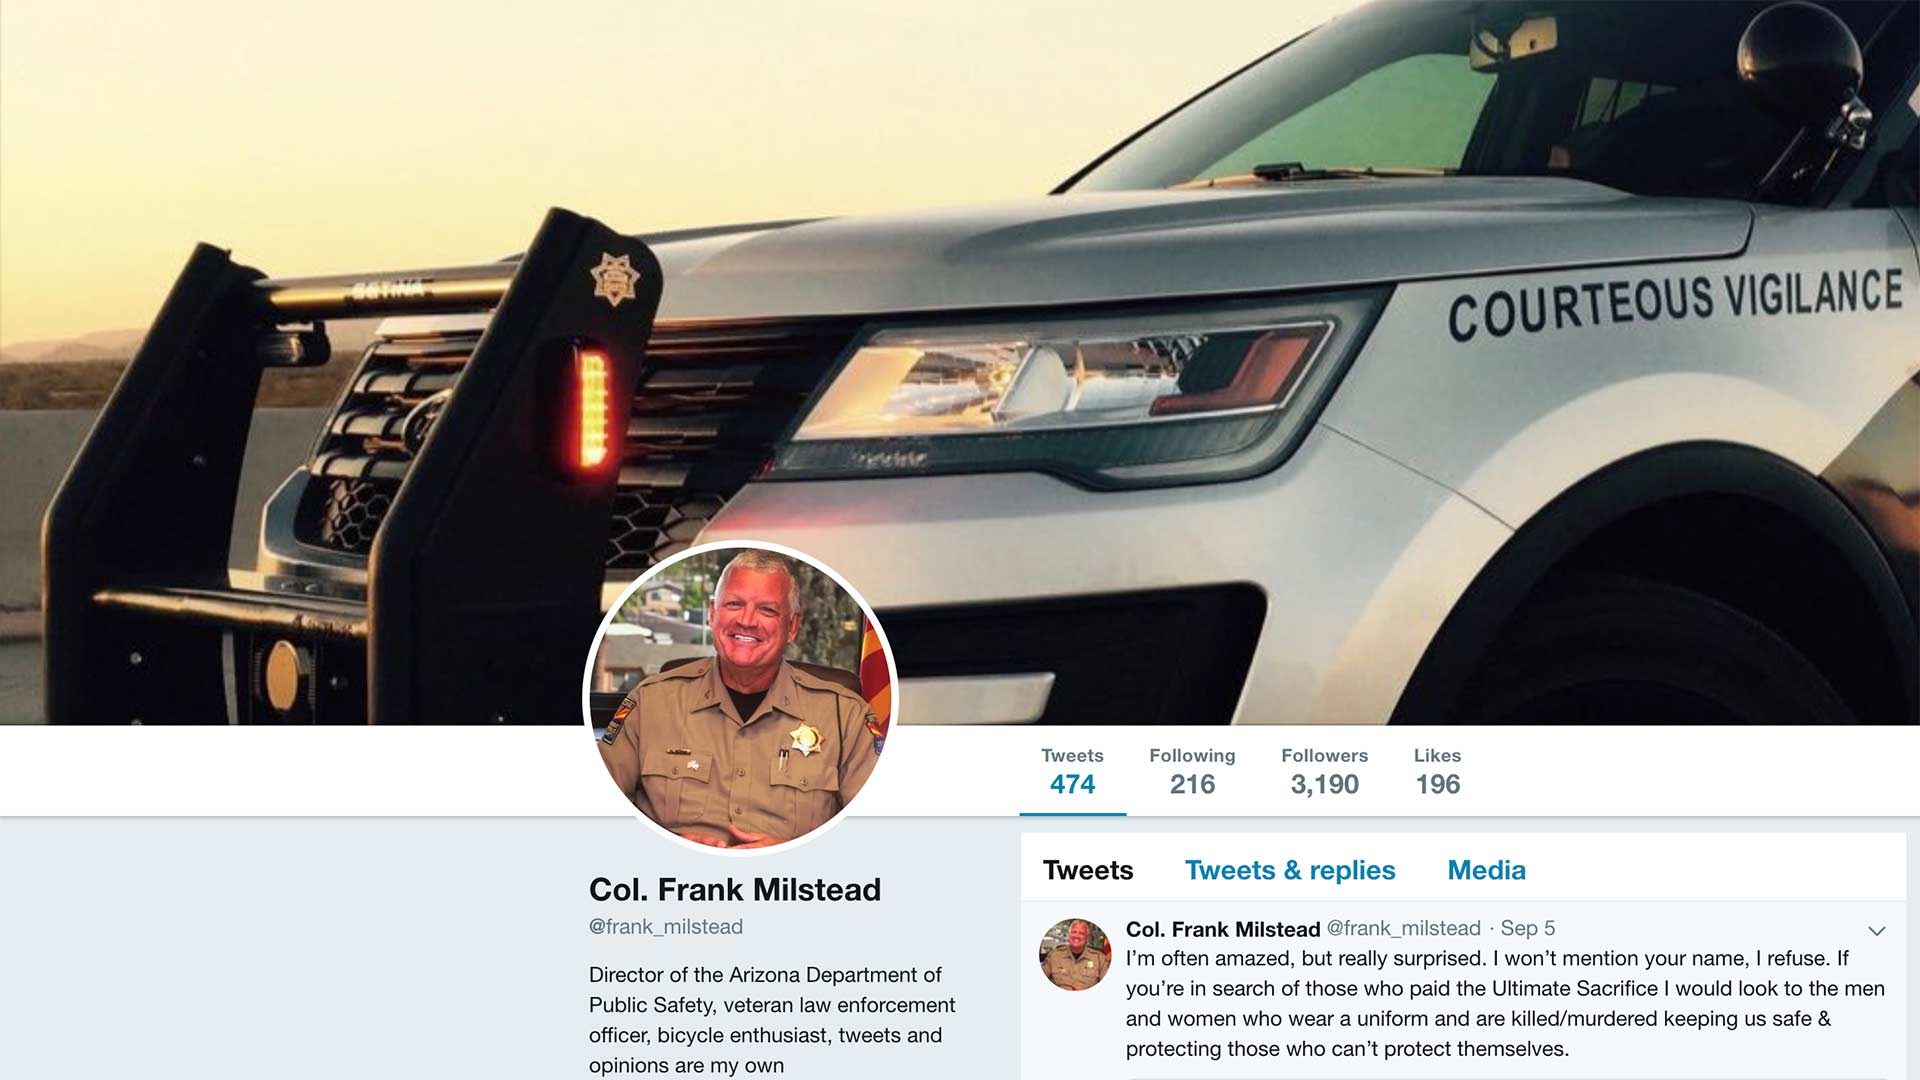 Image of Arizona Department of Safety Director Col. Frank Milstead's Twitter page.